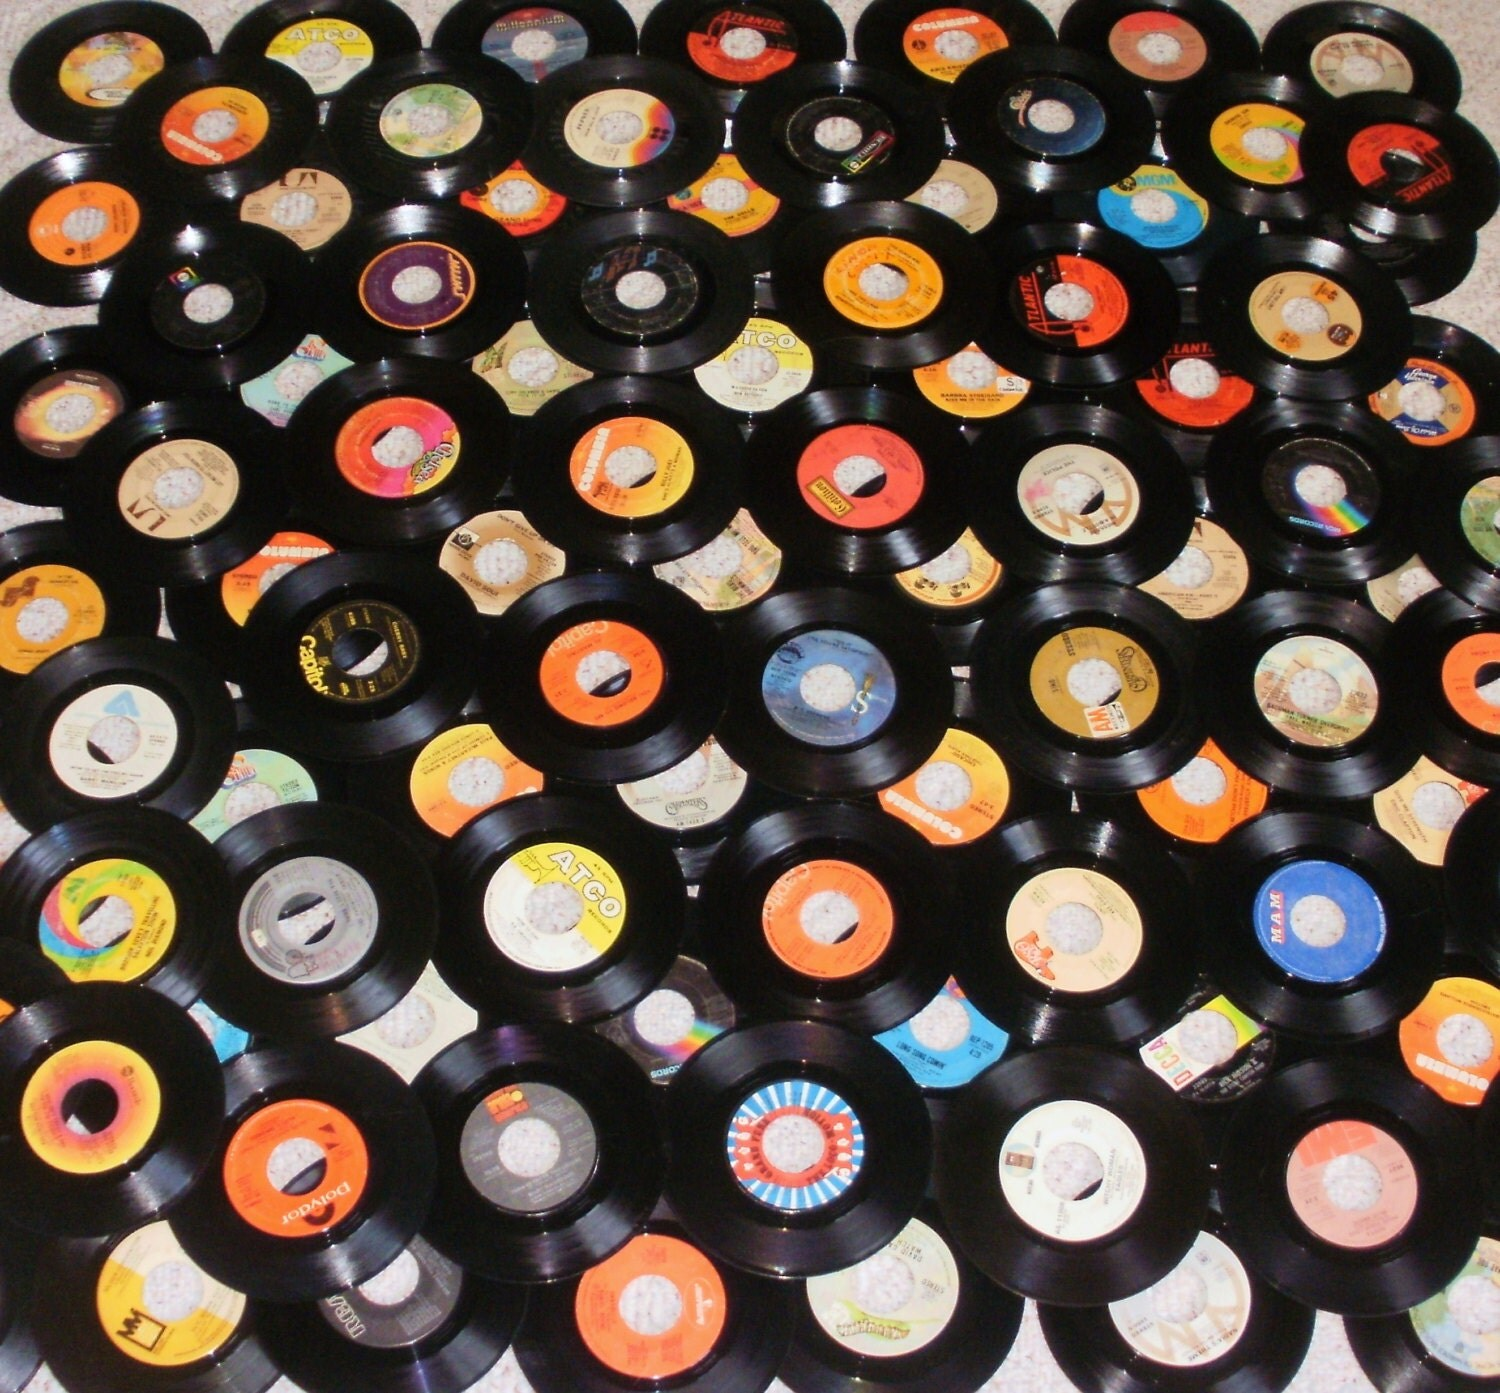 90 vinyl 45 rpm records for decorating or by treasuresyouneed